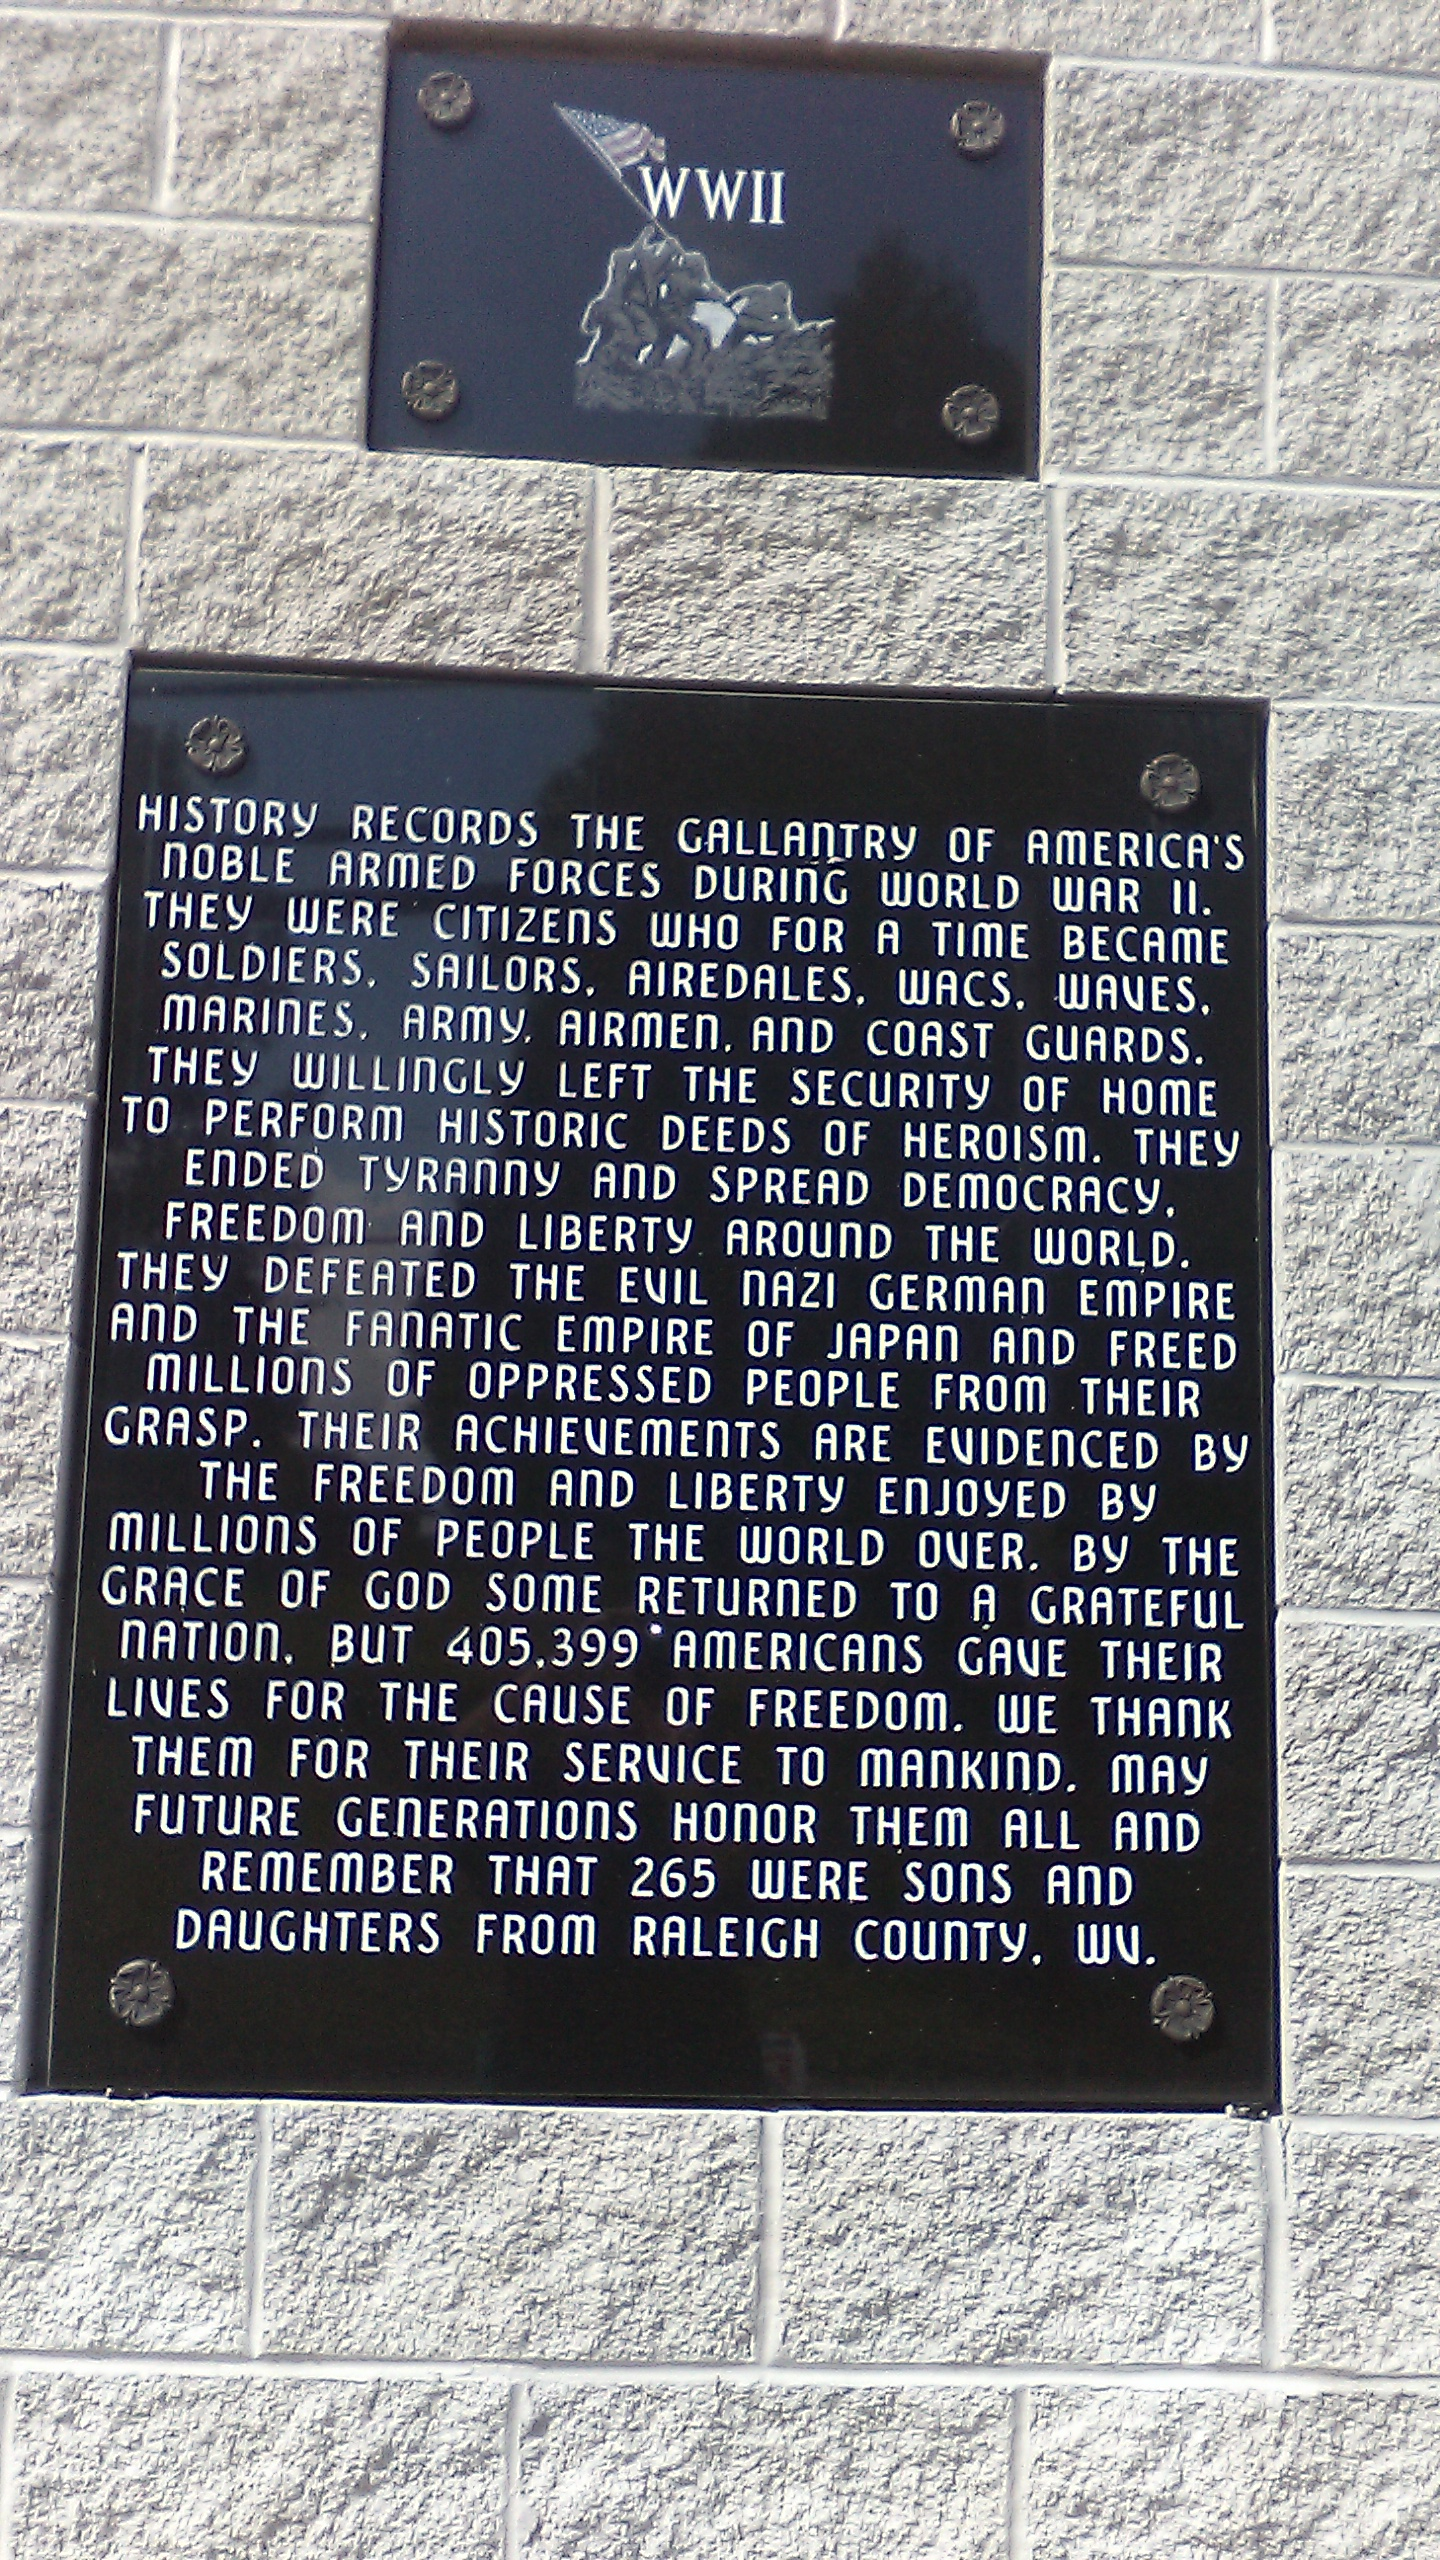 Picture is of front panel with inscription honoring the 265 men and women from Raleigh County, WV who died during World War II